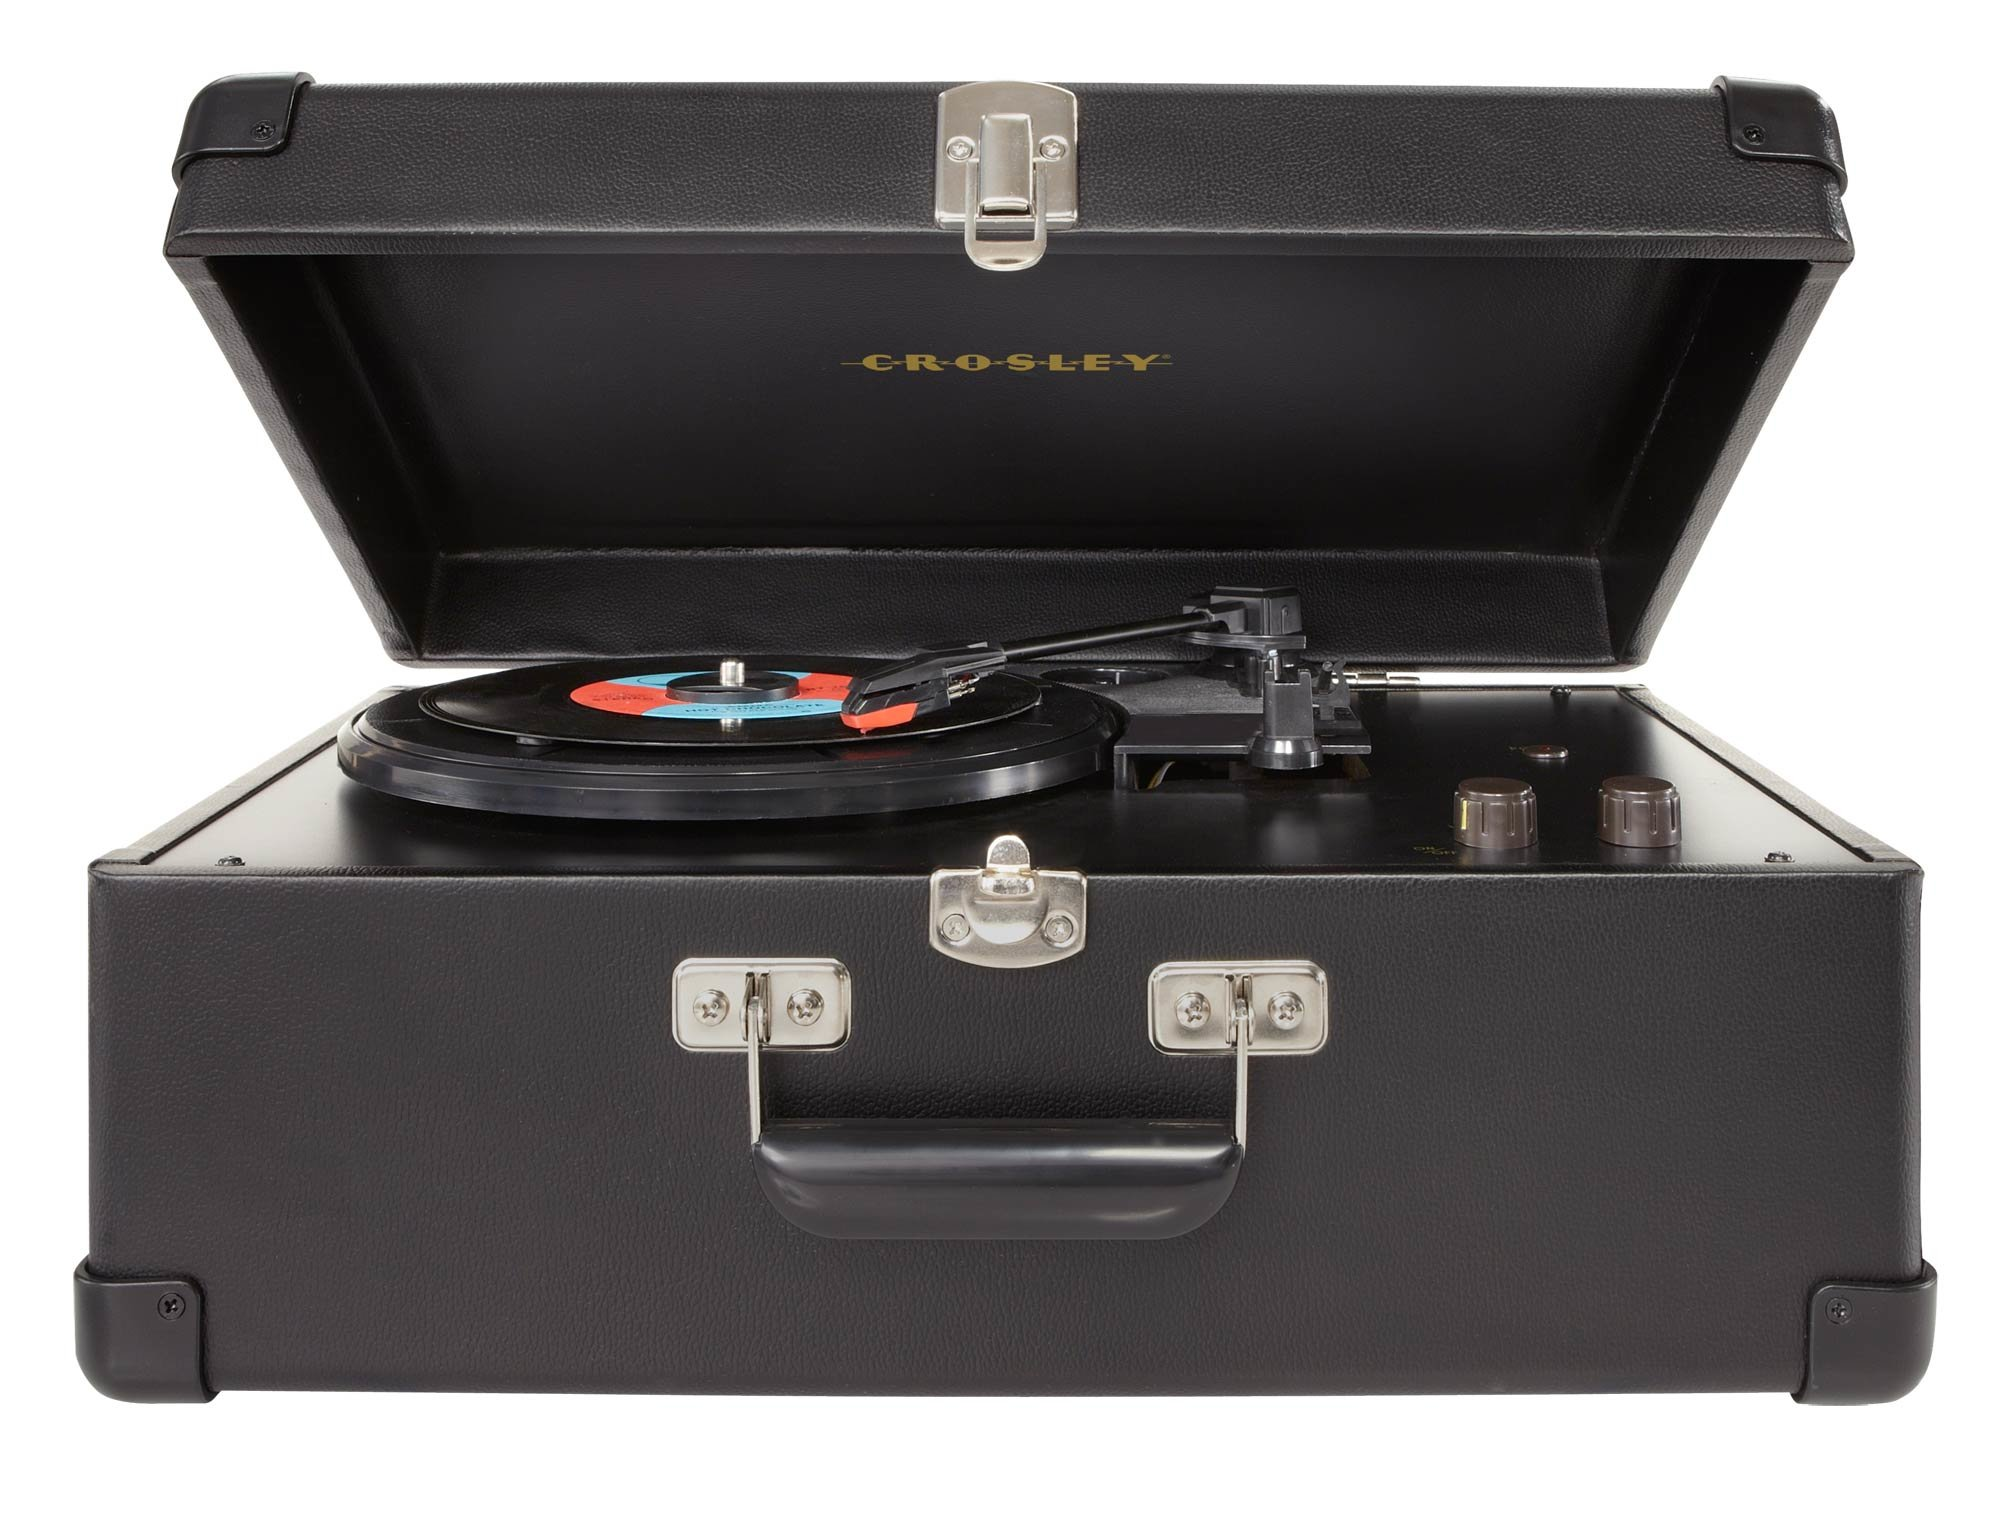 Crosley CR49-BK Traveler Turntable with Stereo Speakers and Adjustable Tone Control, Black by Crosley